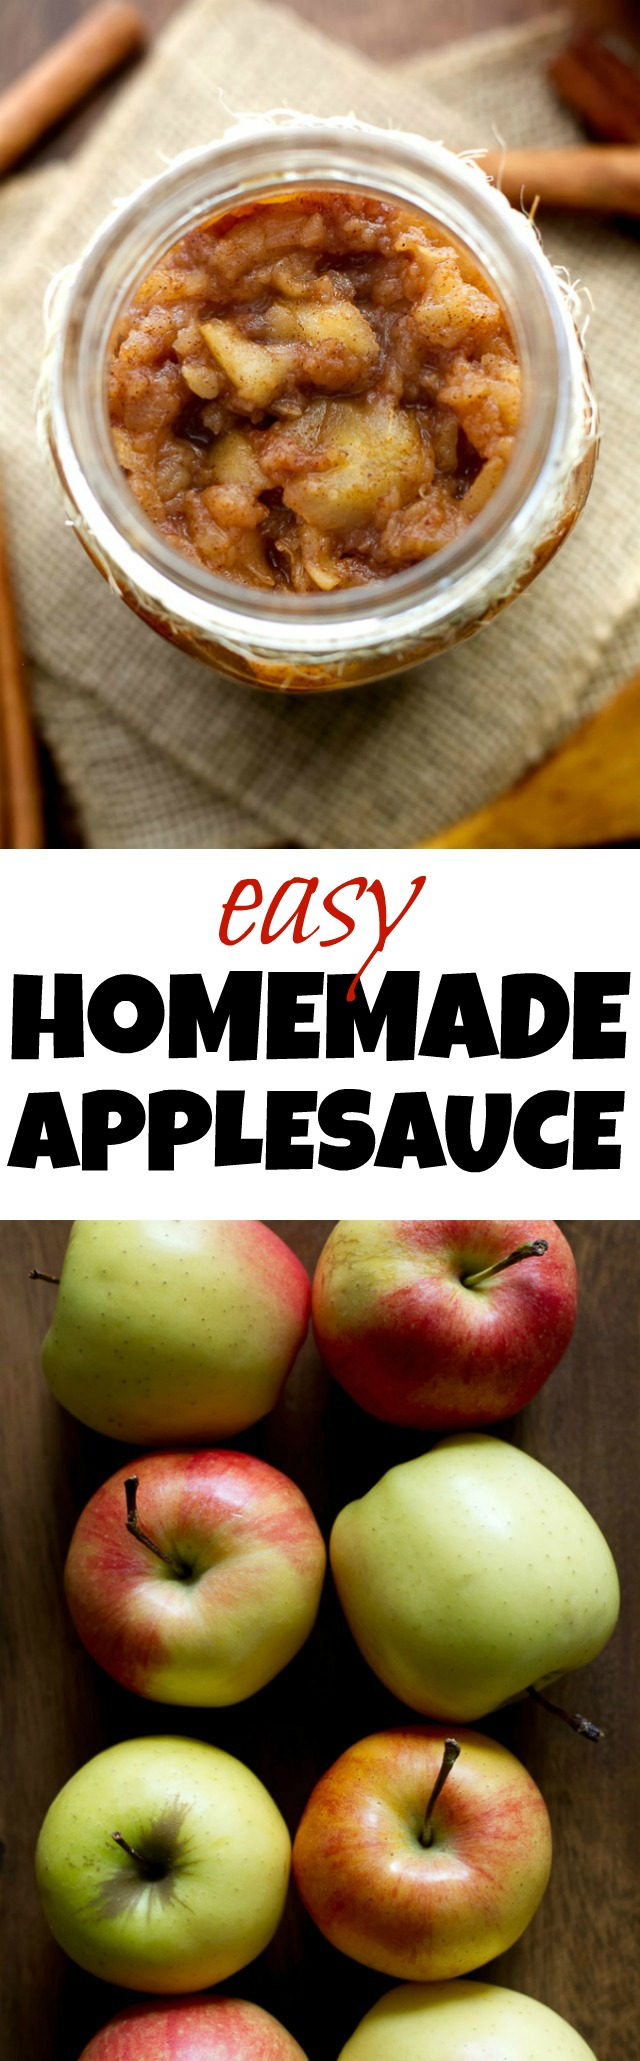 Homemade applesauce that's so delicious and easy to make, you'll never want to buy store-bought applesauce again! Perfect to use in recipes, as a topping, or just to eat on its own | runningwithspoons.com